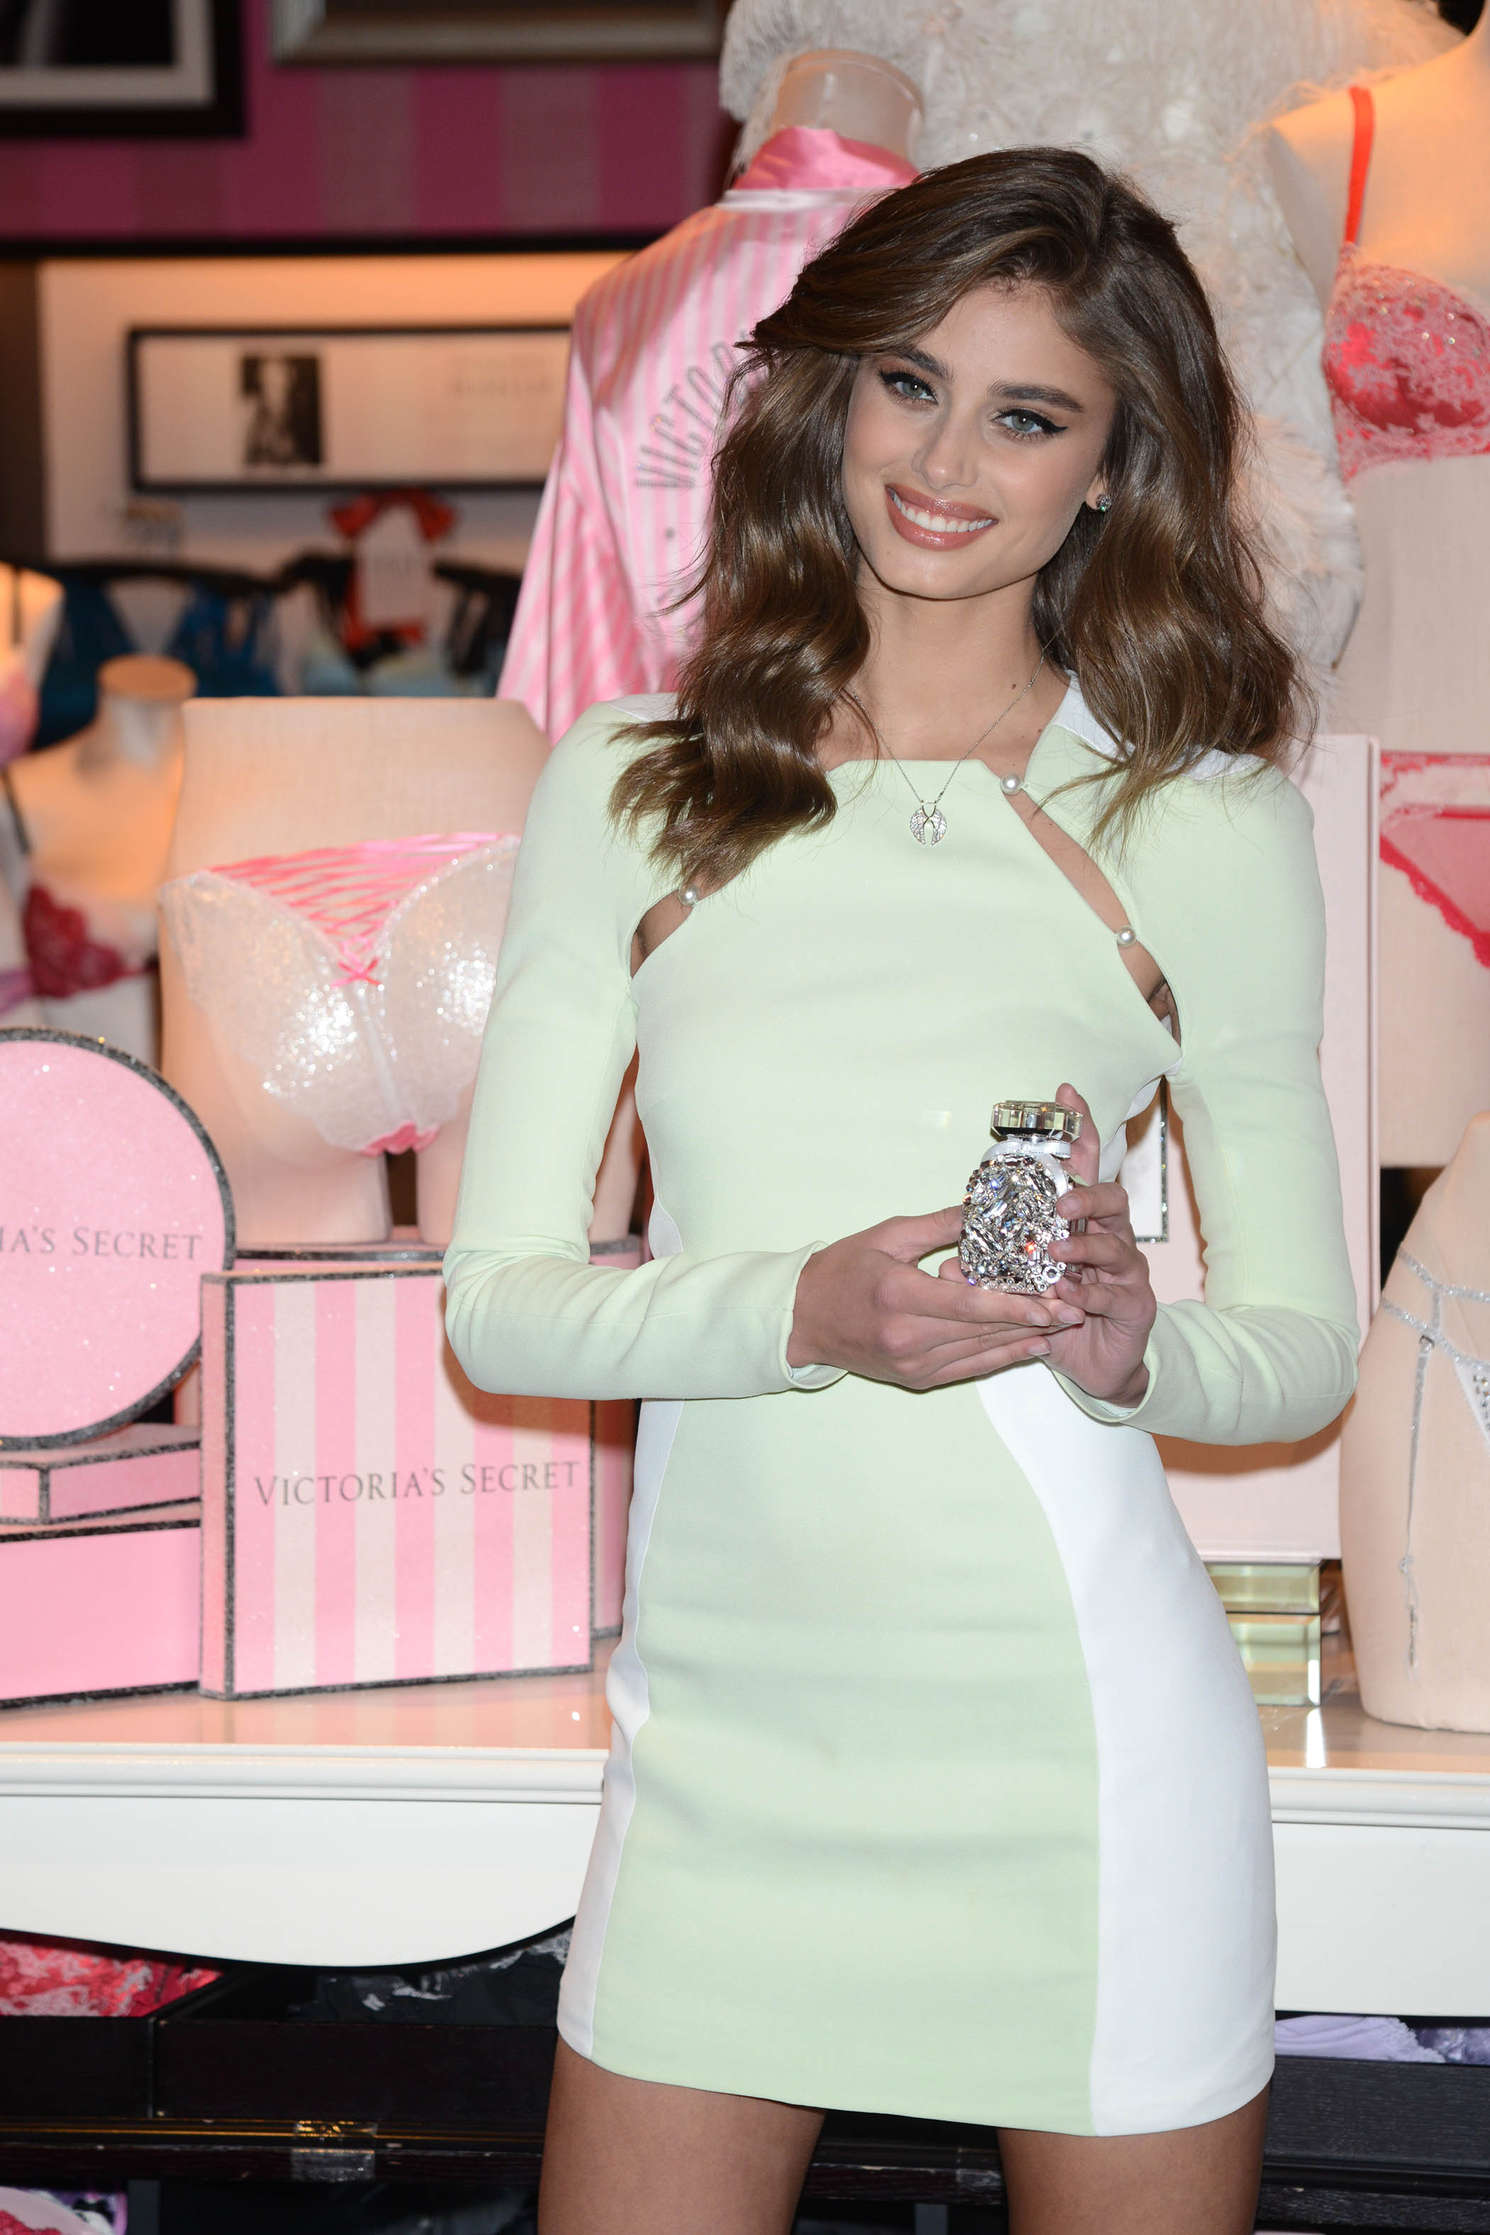 Taylor Hill 2015 : Taylor Hill: Revealing Runway Looks at Victorias Secret -04